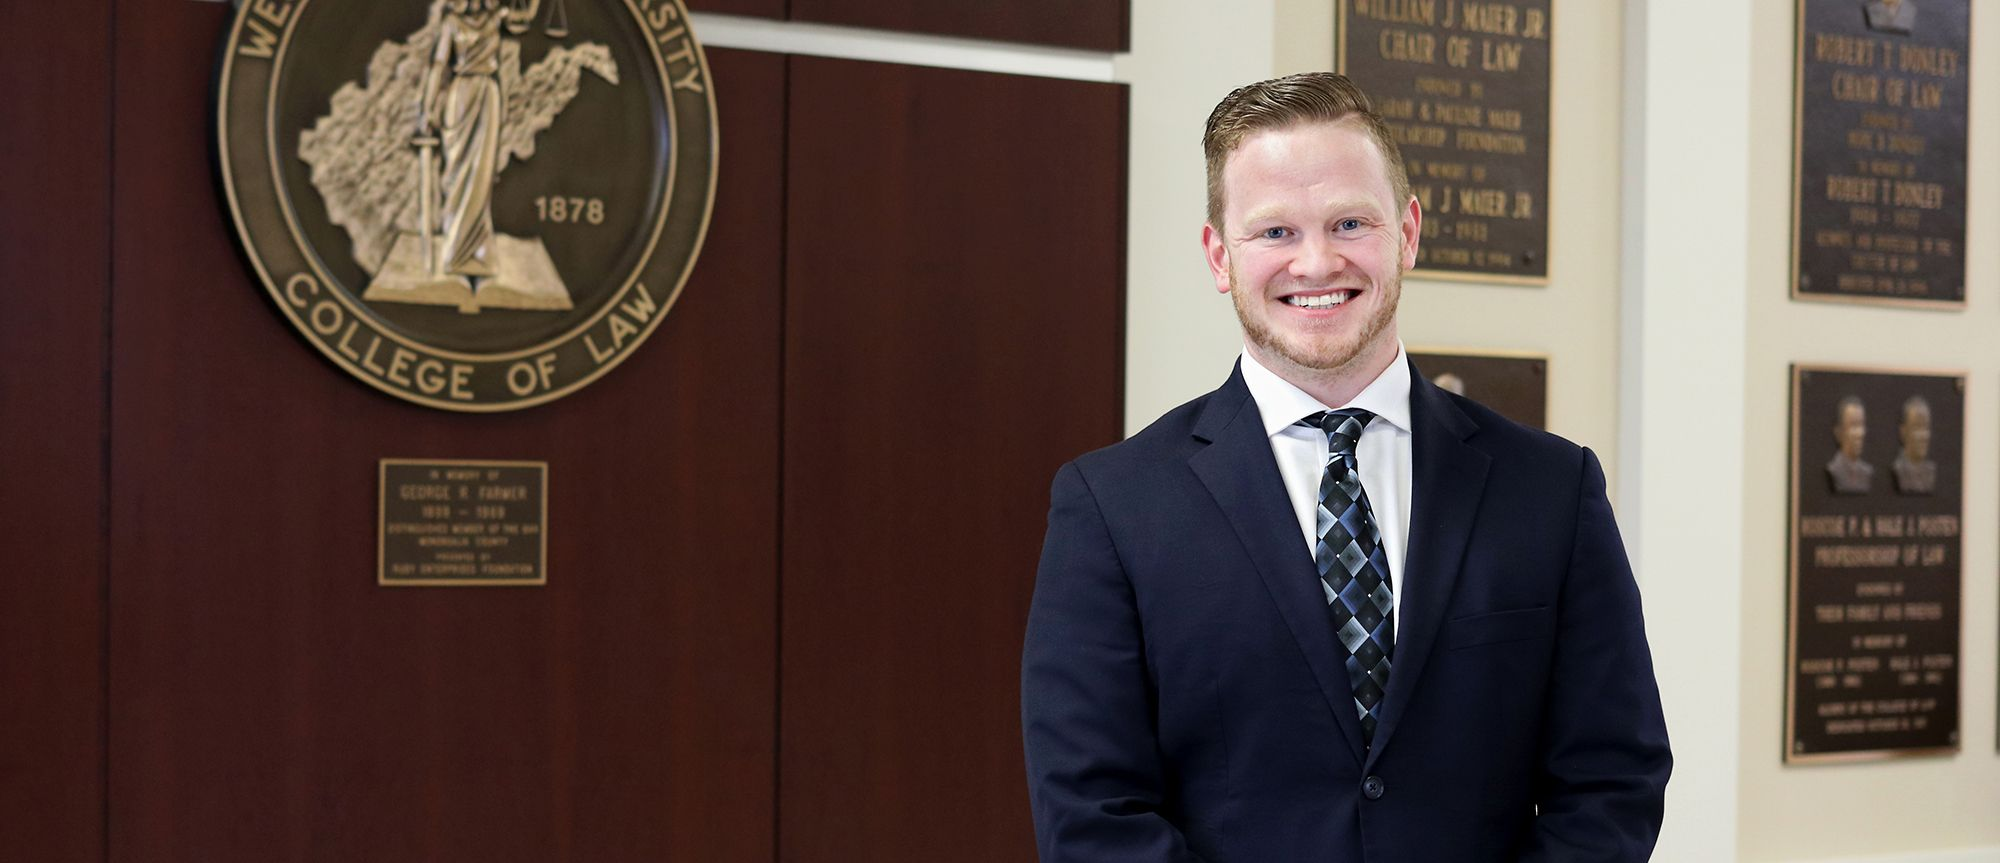 WVU Law student Mitch Moore '19